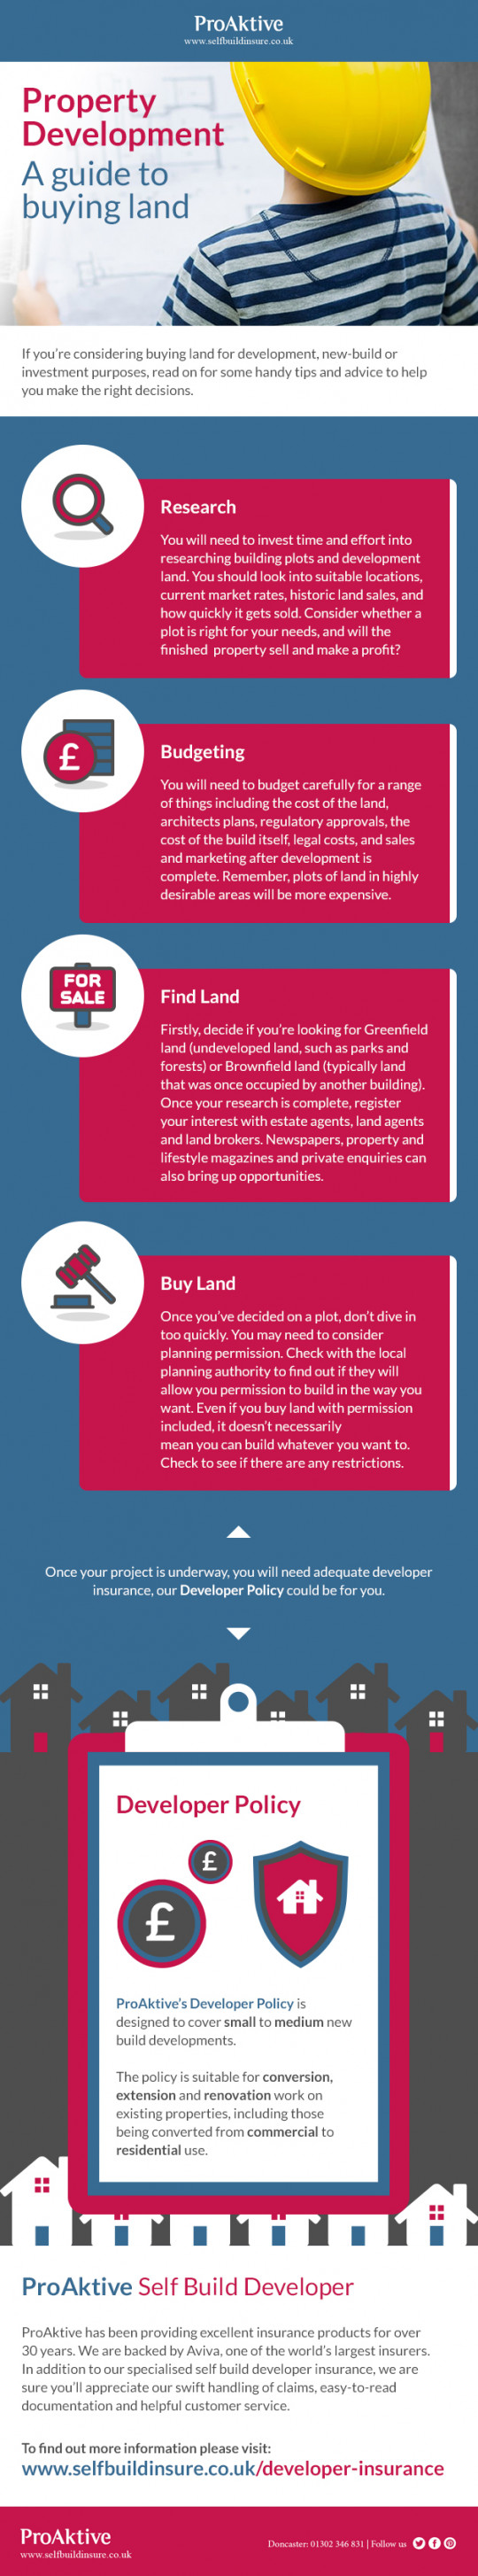 Property Development: A Guide to Buying Land